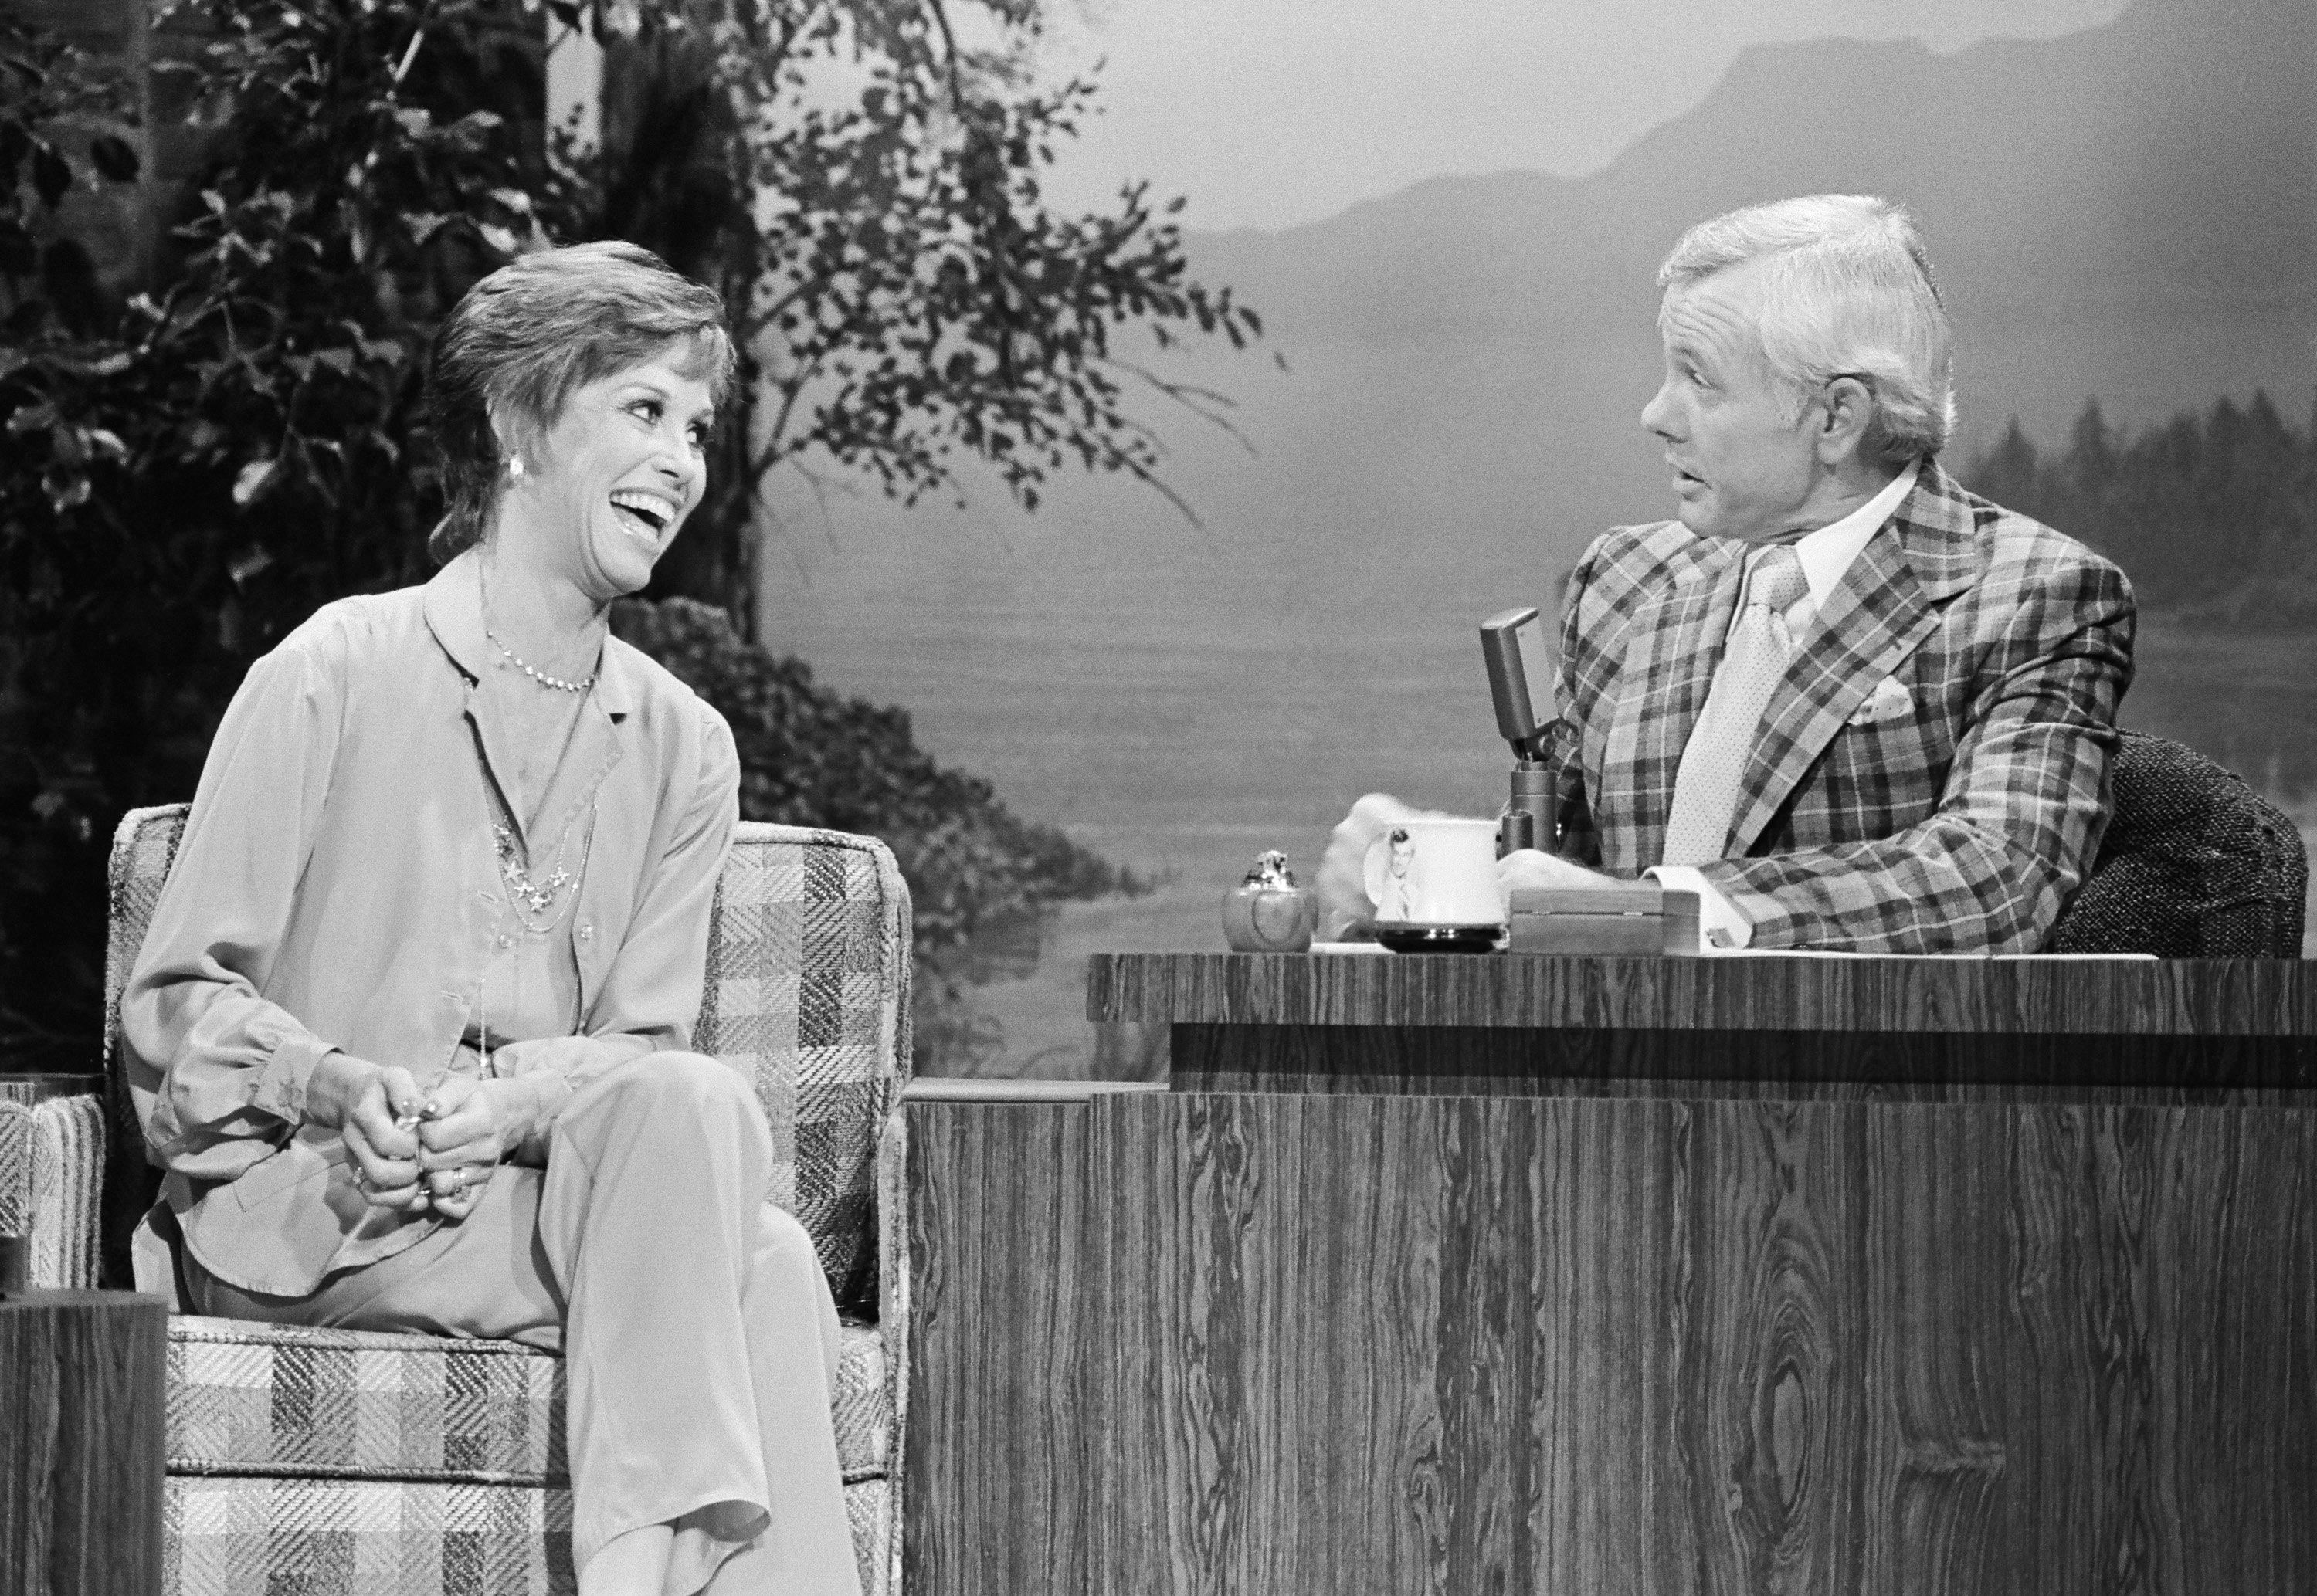 THE TONIGHT SHOW STARRING JOHNNY CARSON -- Pictured: (l-r) Actress Mary Tyler Moore, host Johnny Carson on November 3, 1978-- (Photo by: NBC/NBCU Photo Bank via Getty Images)